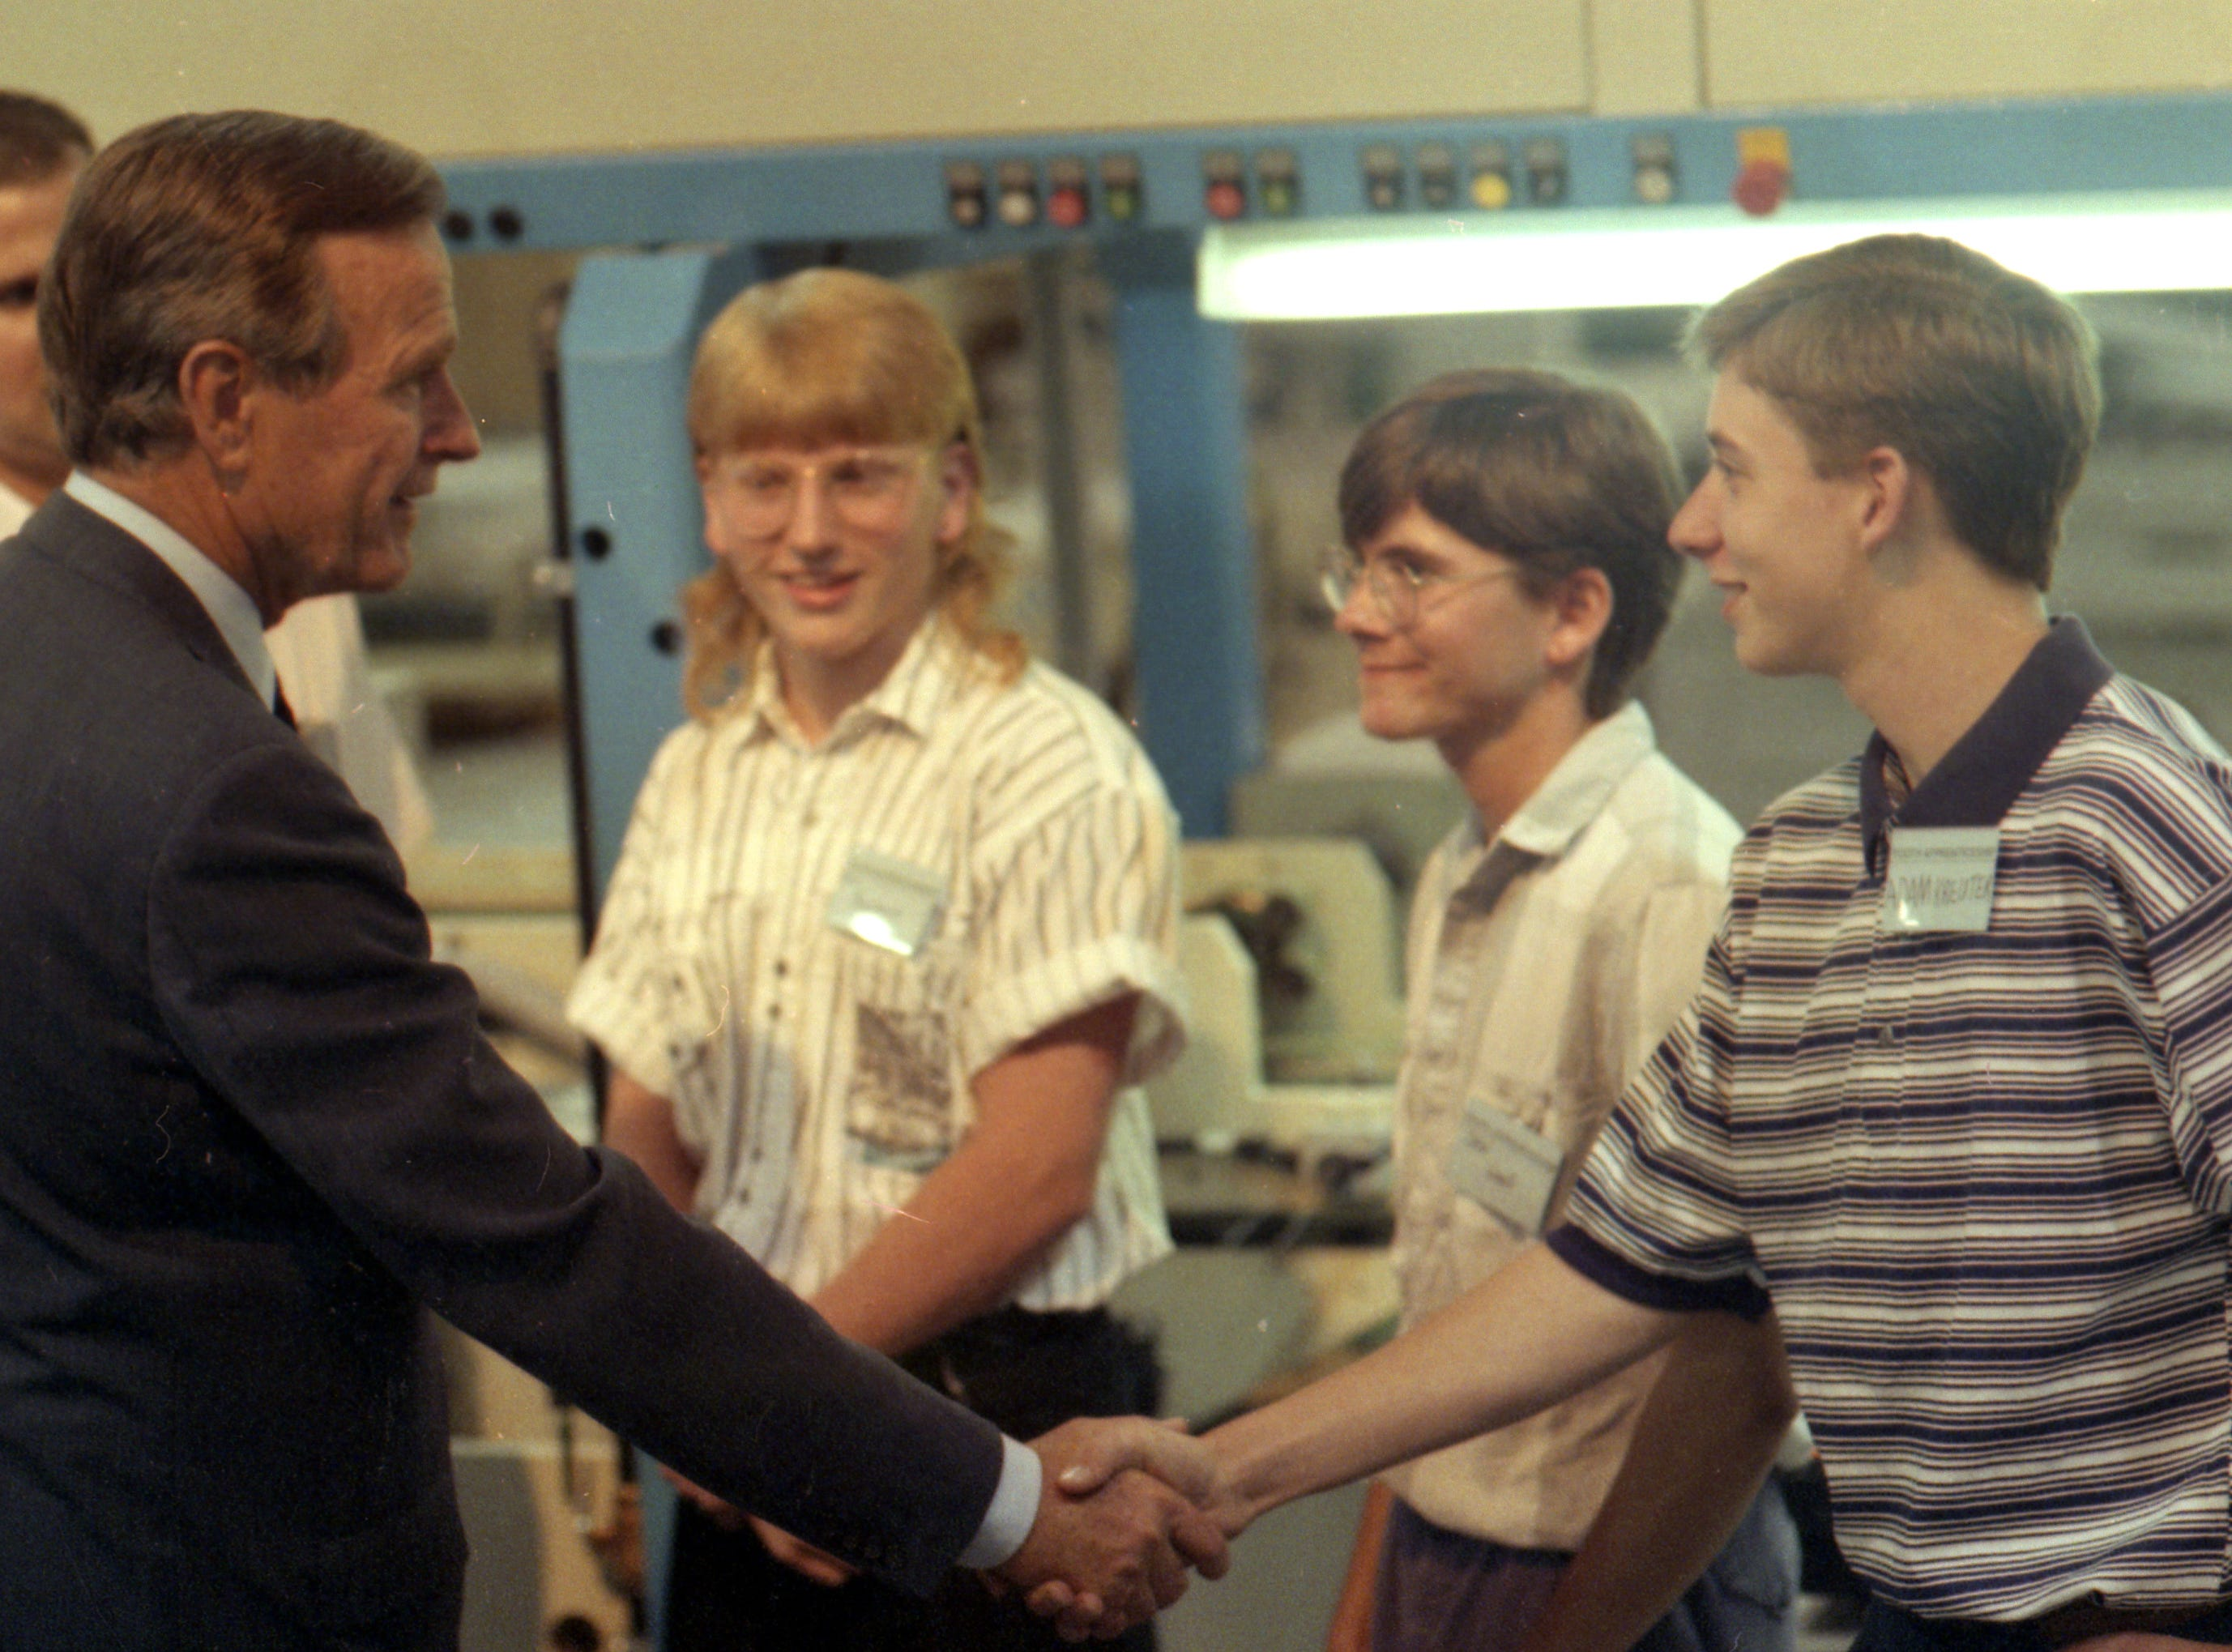 July 27, 1992. Adam Kreuter of Neenah shakes hands with President George H. W. Bush who met students at Outlook Graphics in the Town of Menasha. Post-Crescent photo by Mark Courtney